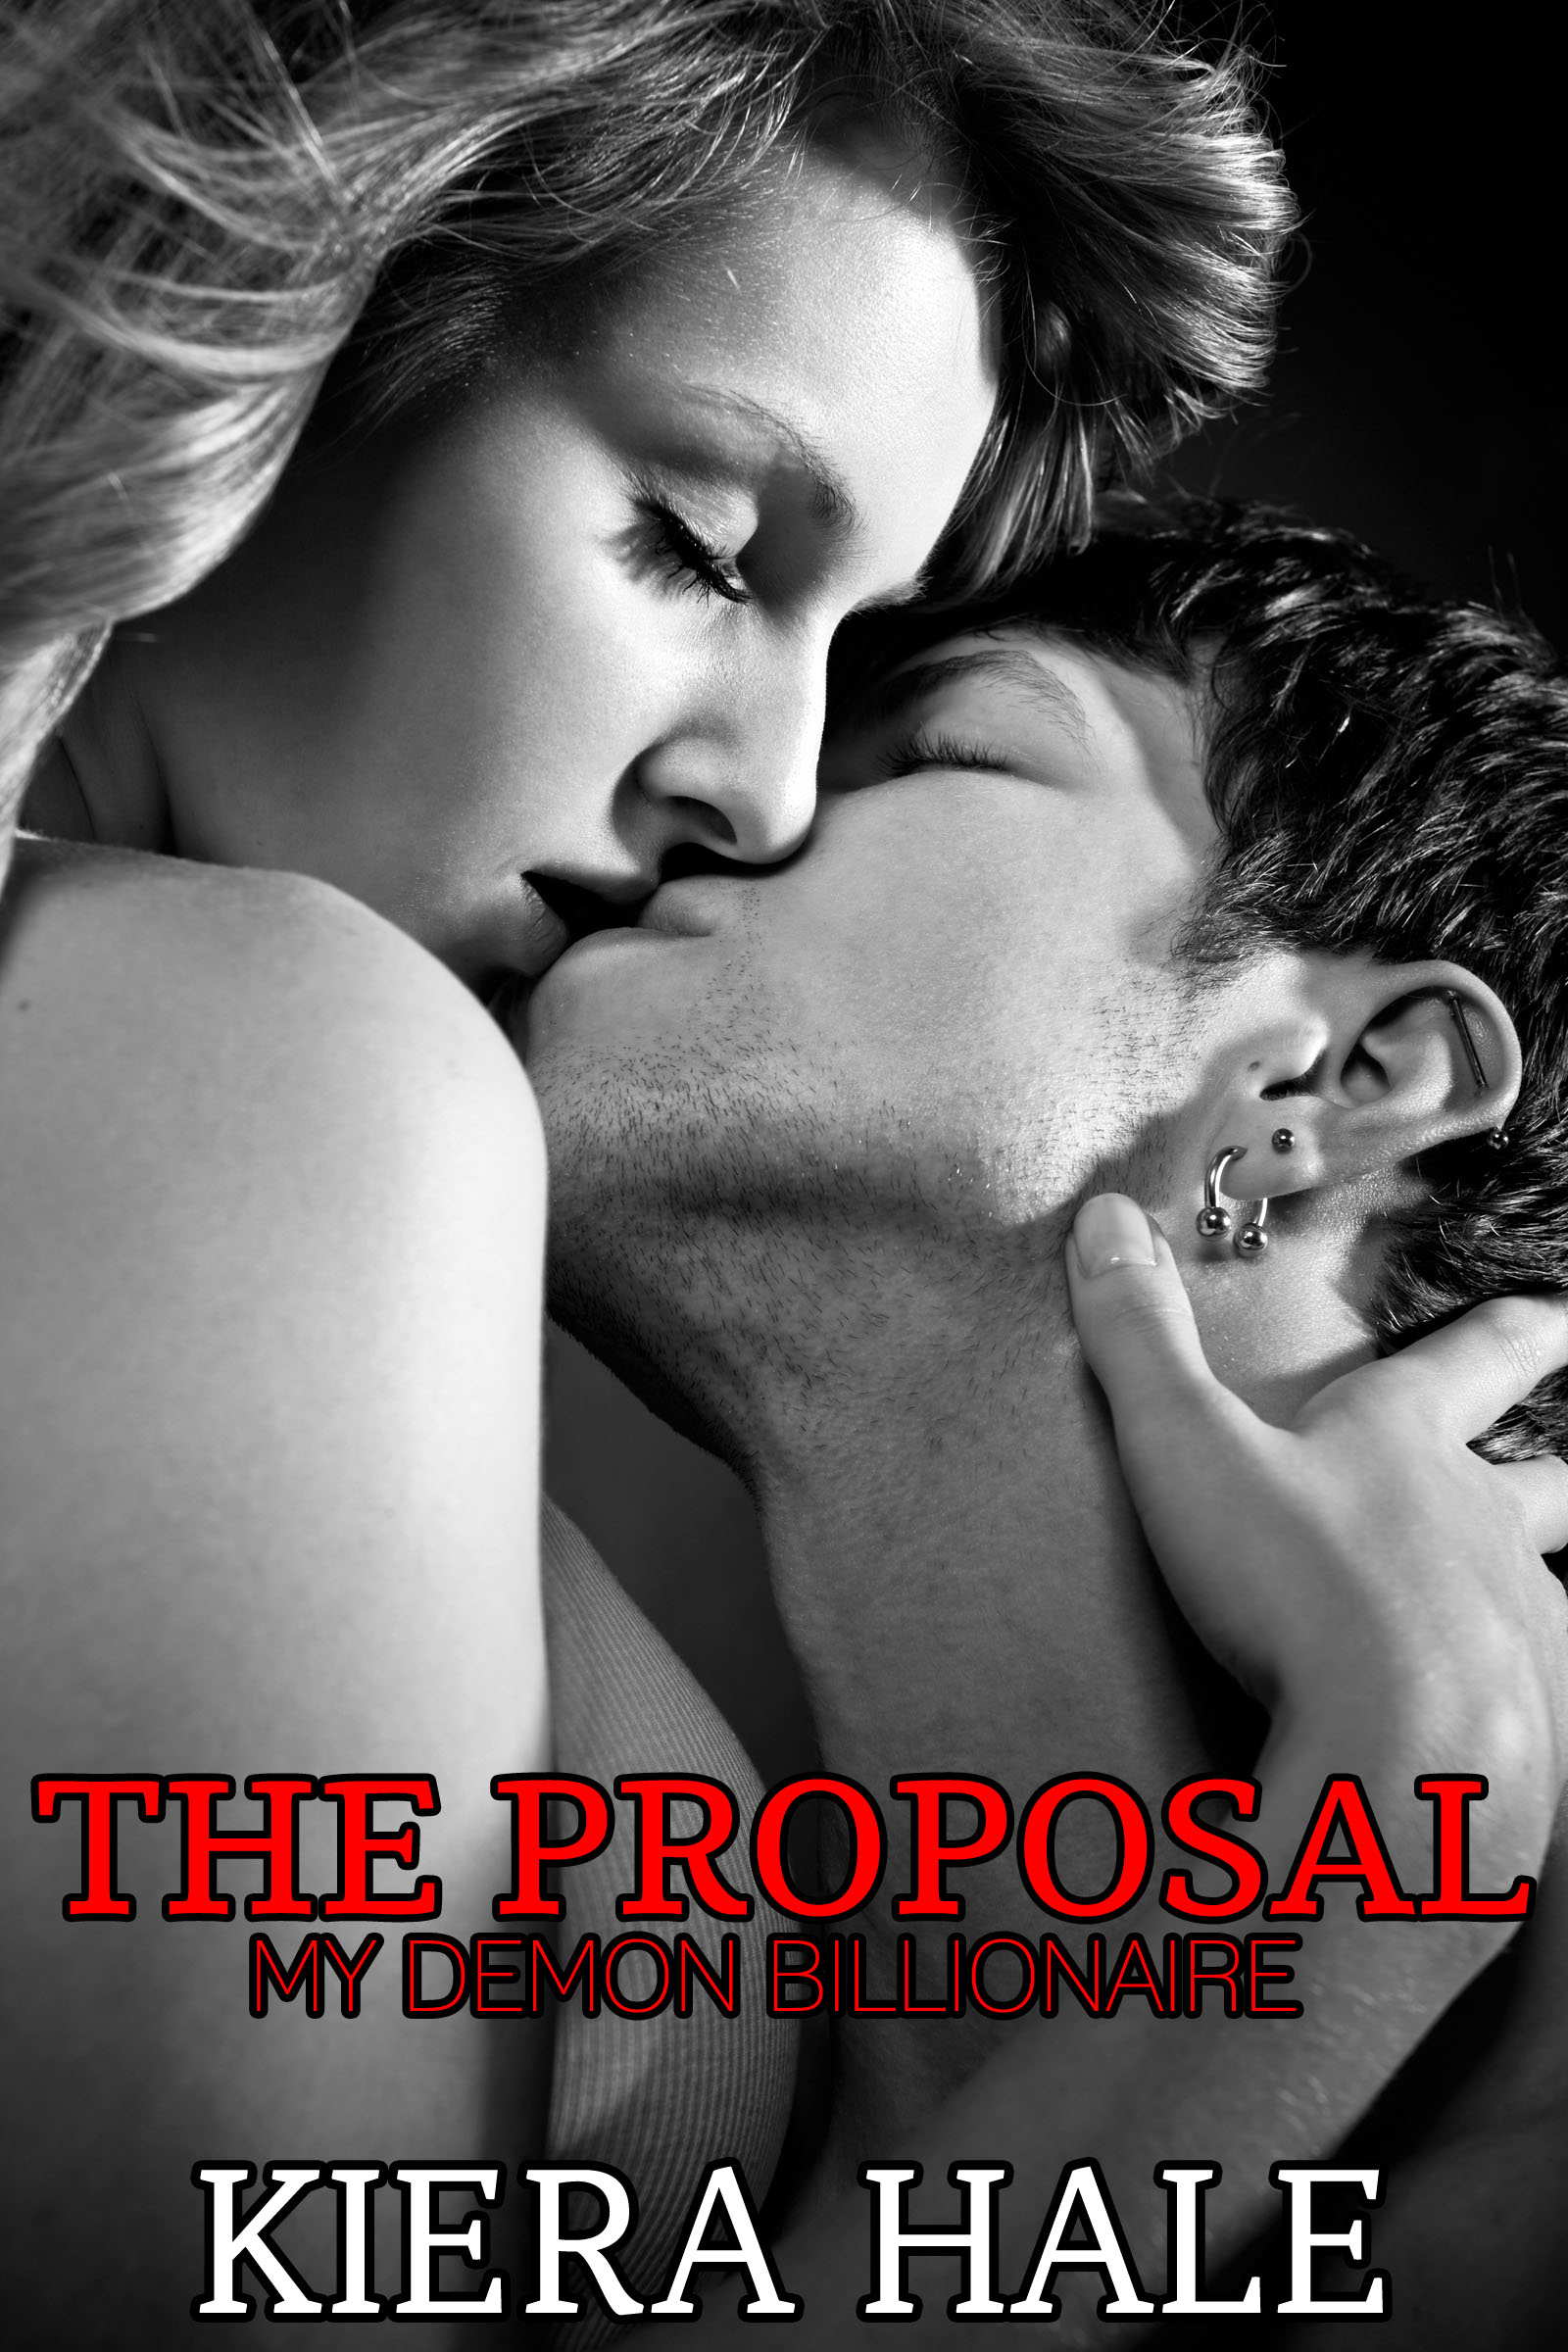 My Demon Billionaire 2 Trilogy (Part 3: The Proposal)